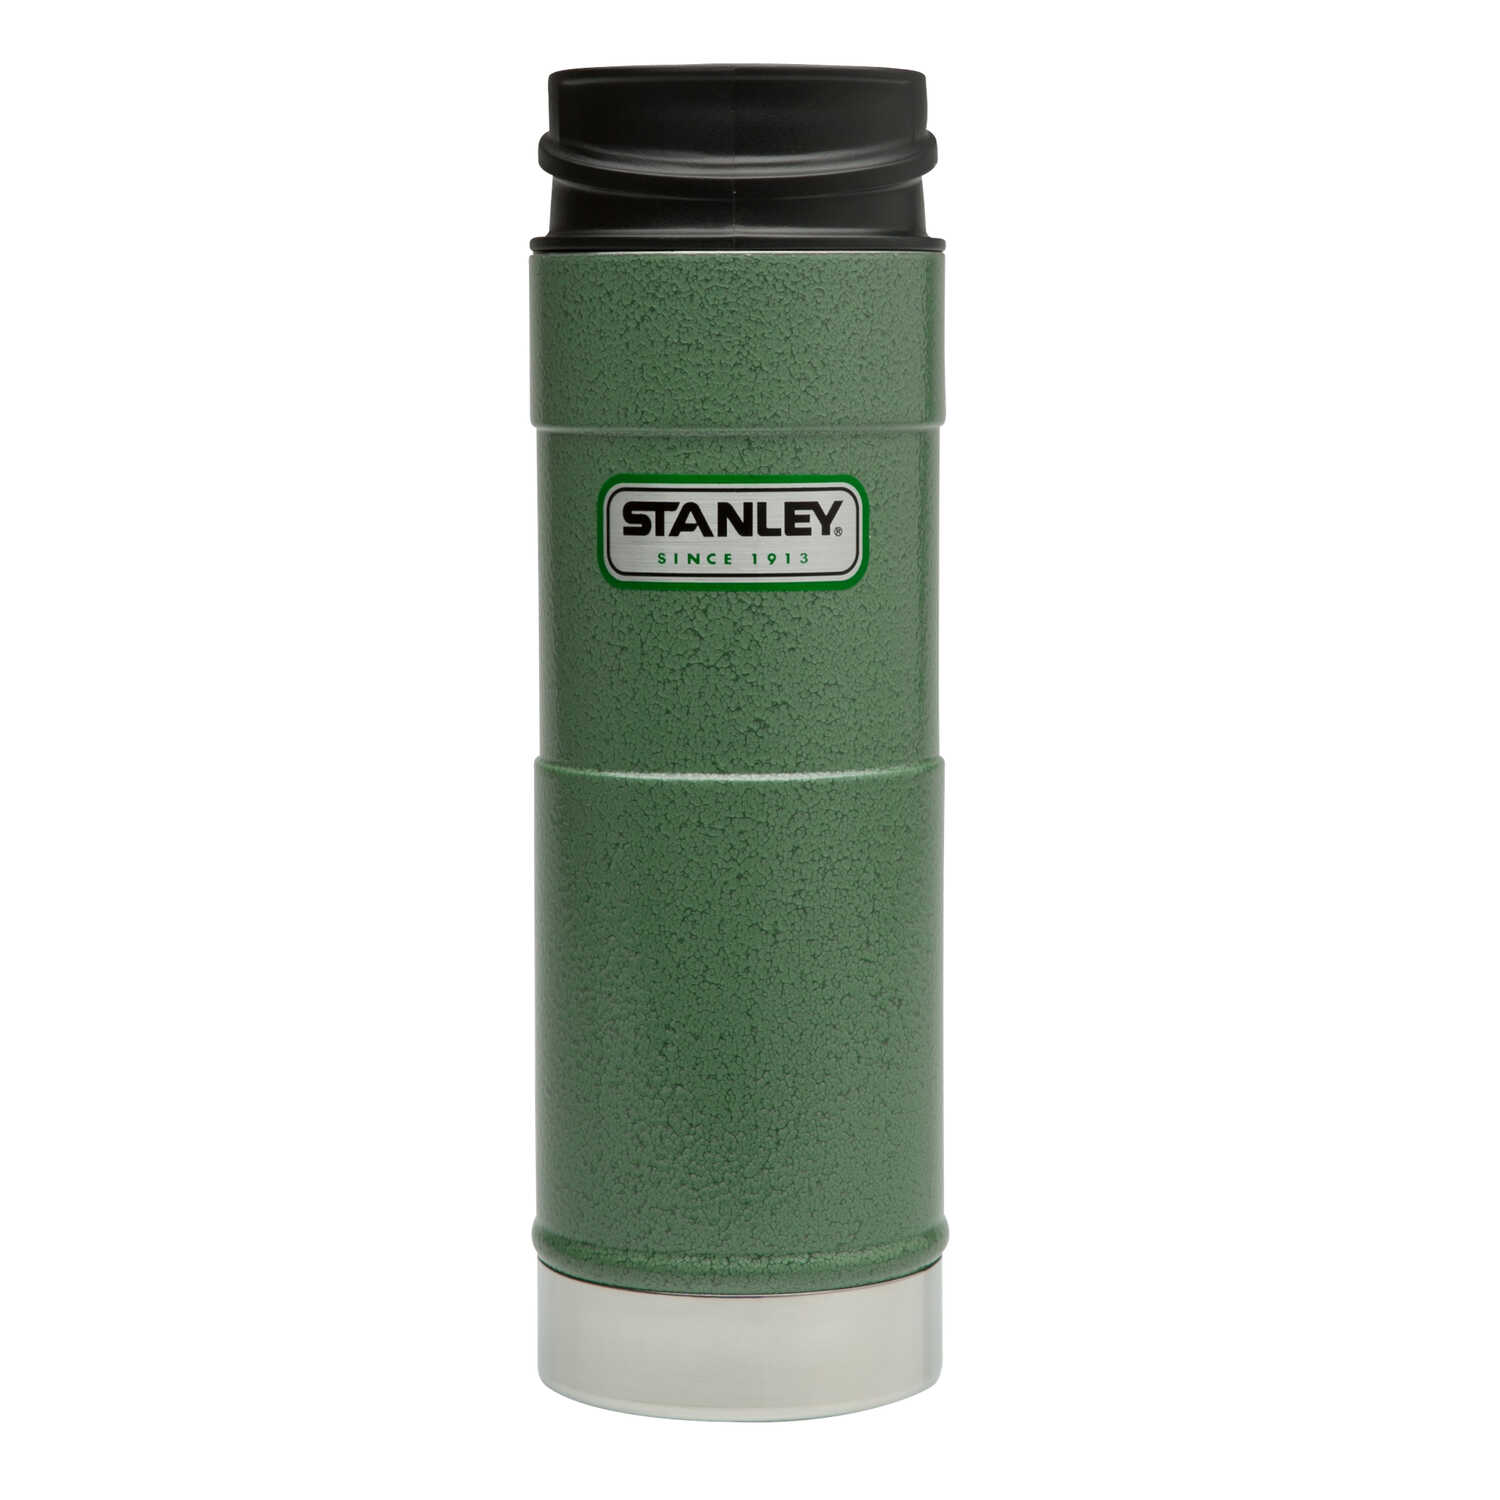 Stanley  Hammertone Green  Stainless Steel  Classic  Insulated Mug  16 oz. BPA Free